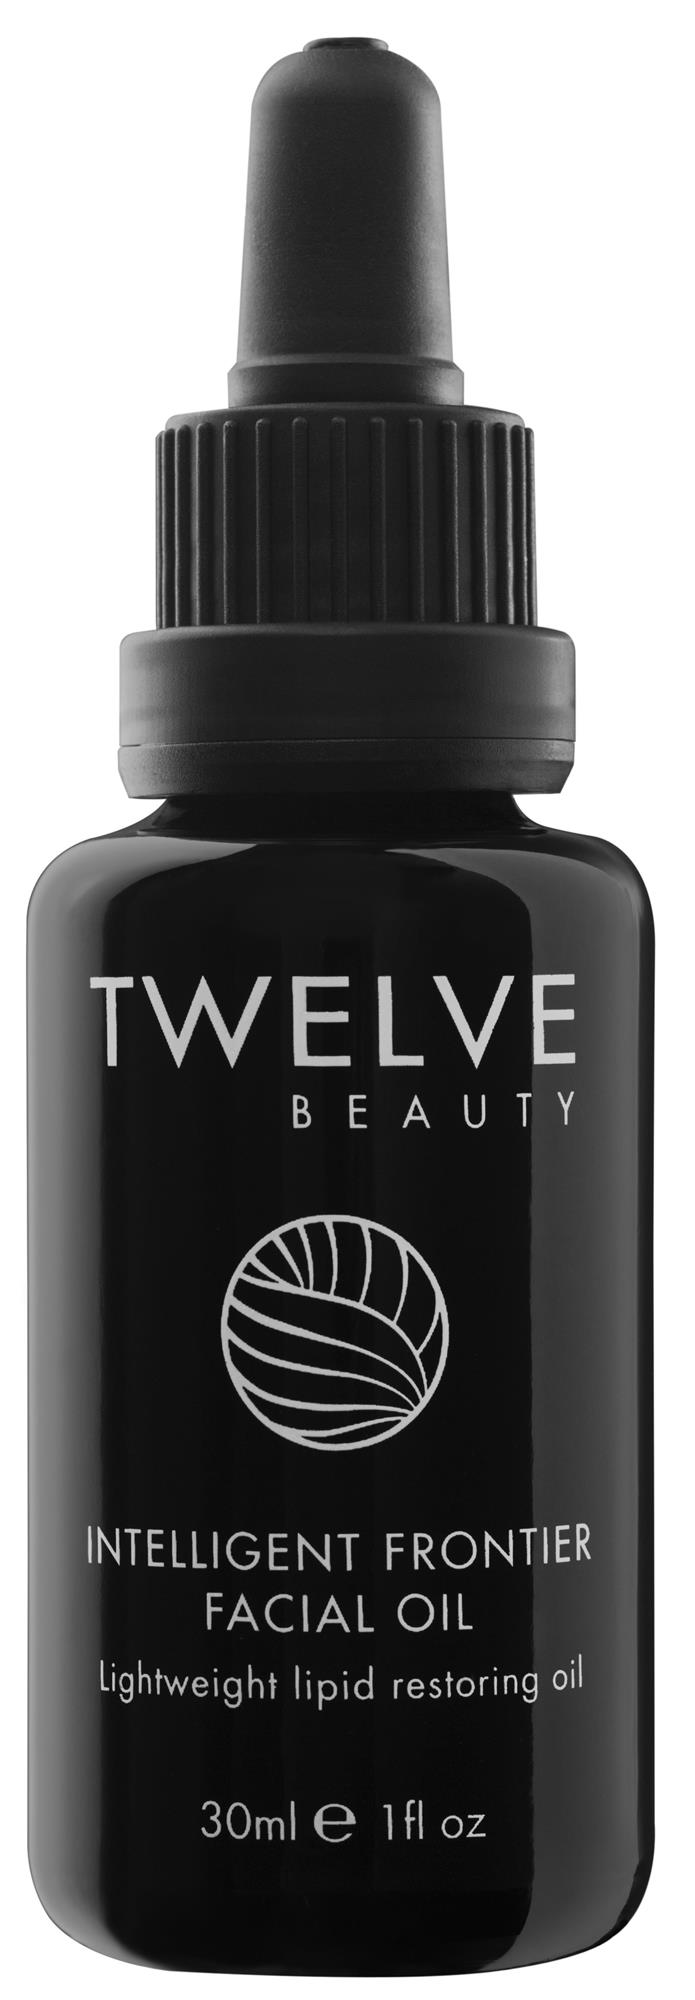 Twelve Beauty Intelligent Frontier Facial Oil